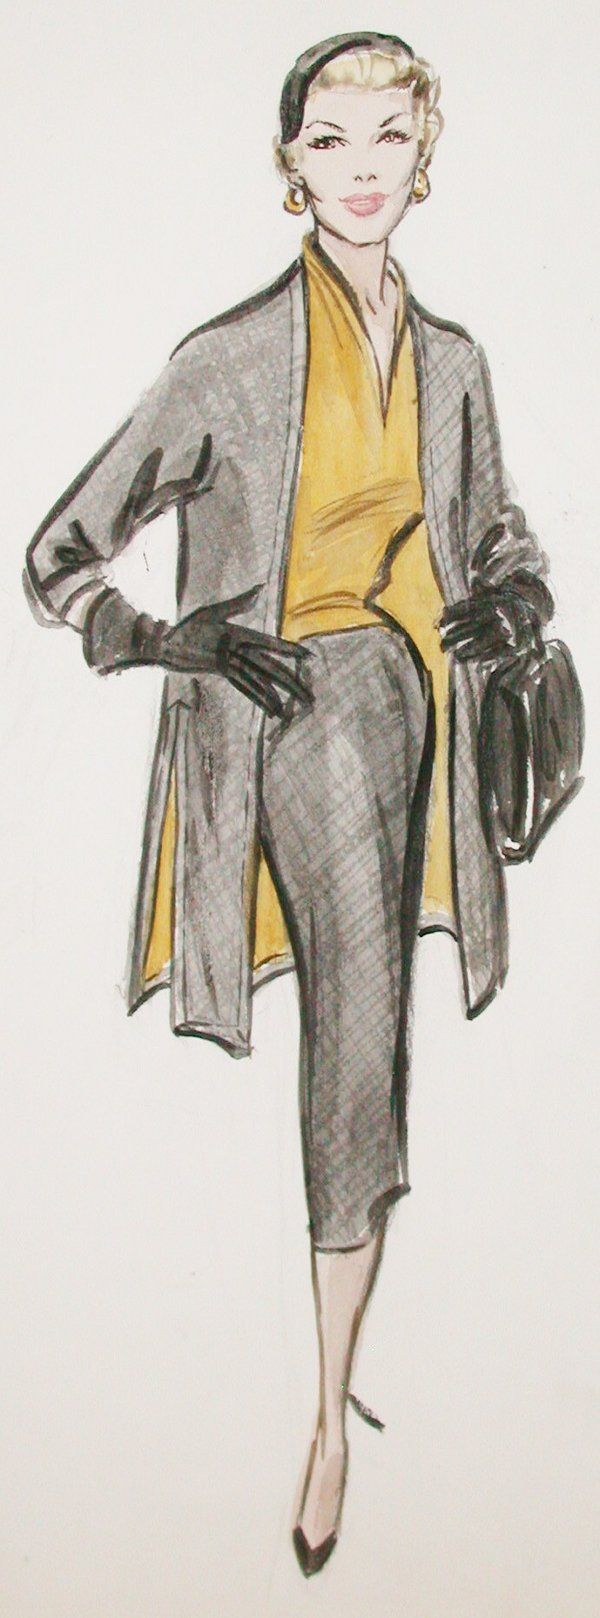 """Costume sketch of Edith Head design for Doris Day in the Alfred Hitchcock classic """"The Man Who Knew Too Much"""" (1956 Paramount)."""